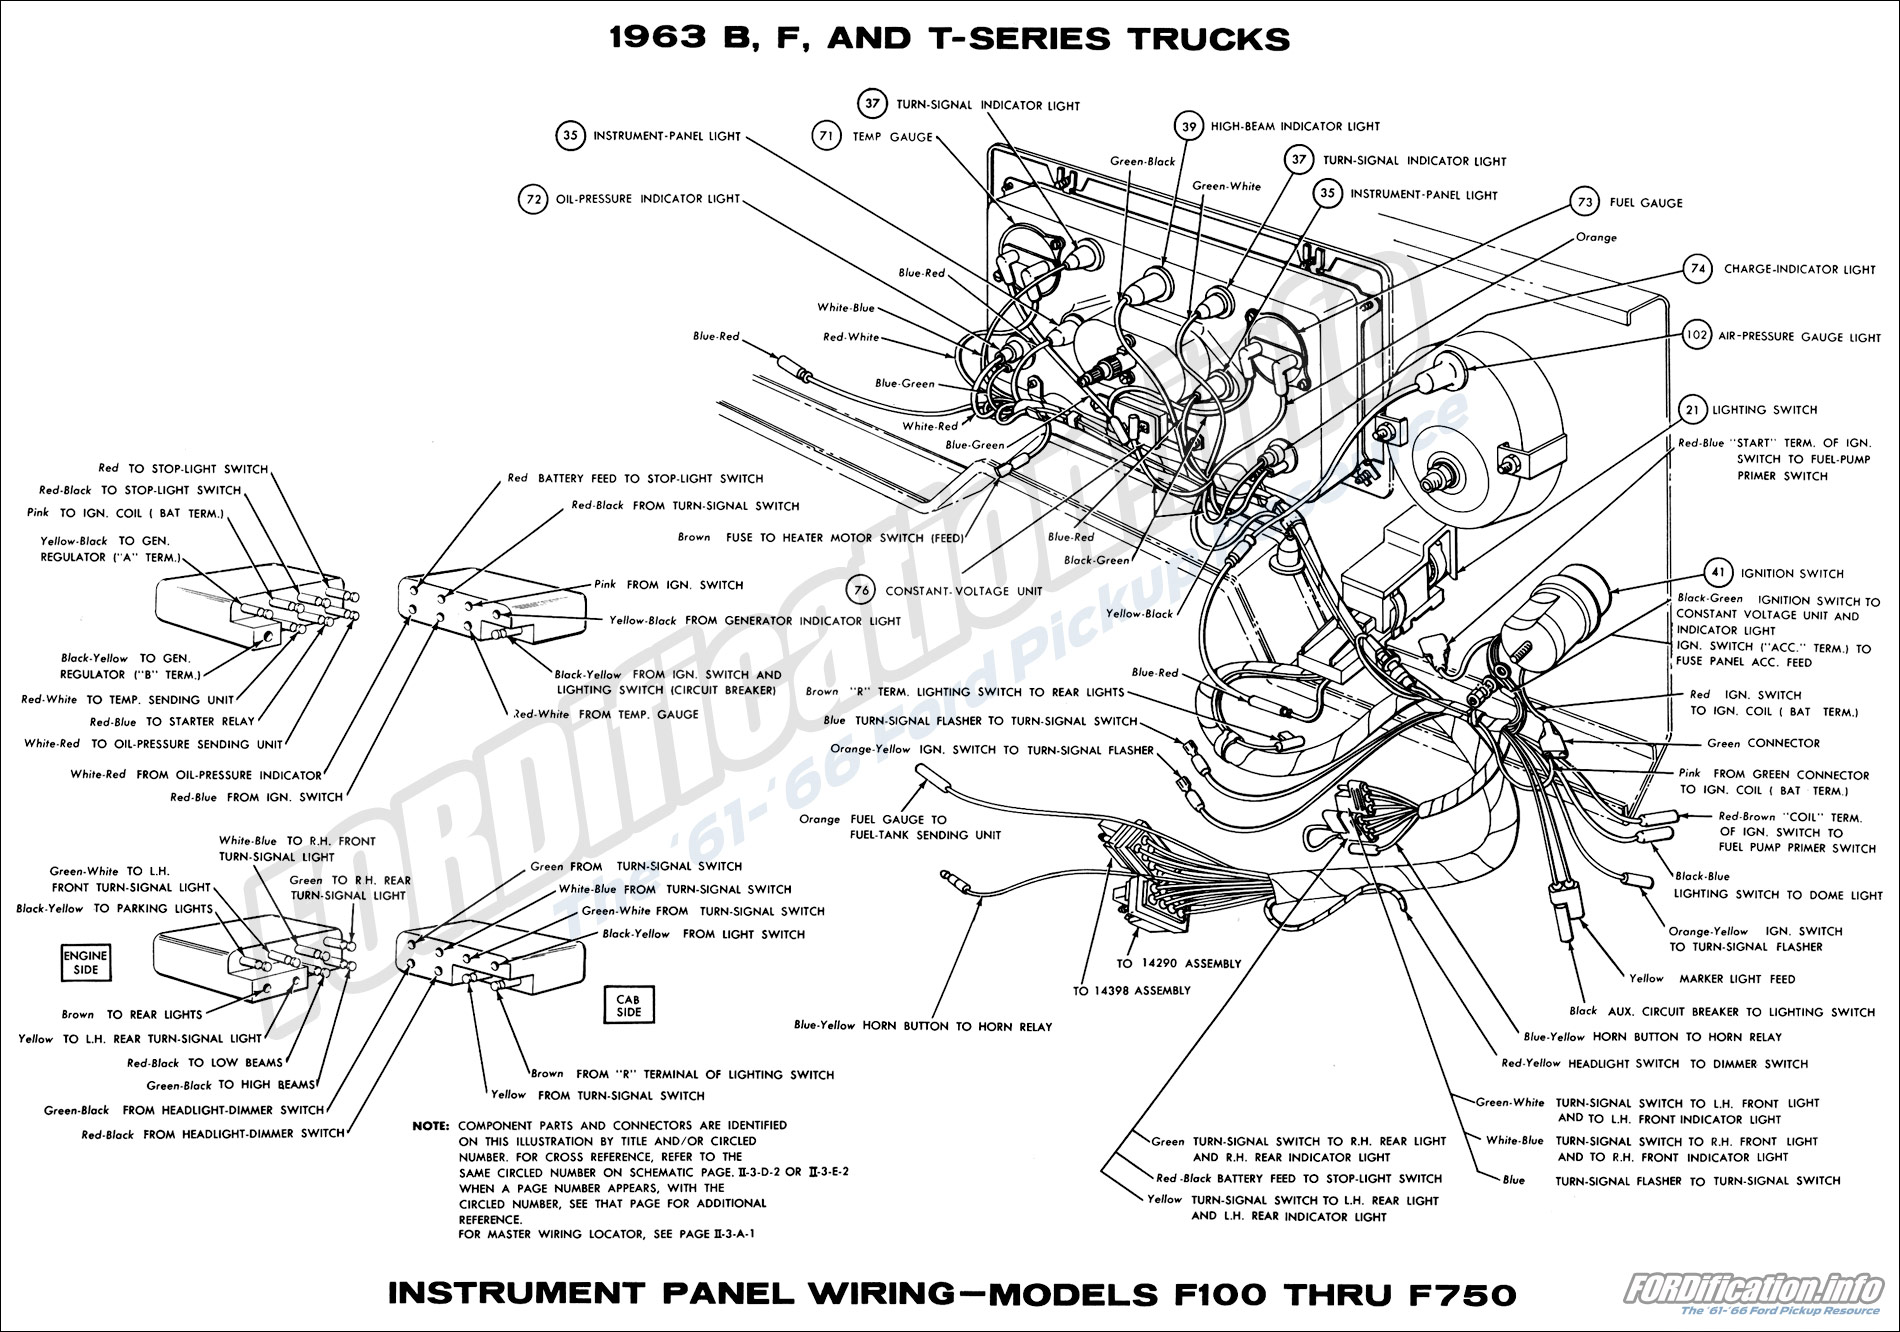 Ford Coil Wiring   WIRE Center • besides 2008 Ford Edge Ignition Coil Diagram   Wiring Diagram • further Mg Tc Wiring Diagram   preisvergleich me further 6 volt coil question   MyTractorForum     The Friendliest Tractor together with  as well Ignition Coil furthermore  besides Ignition Coil Distributor Wiring Diagram WIRING DIAGRAM Within Ford besides 57 65 Ford Wiring Diagrams furthermore Mercedes Ignition Coil Wiring Diagram   Diagram Schematic as well Ford Coil Wiring Diagram   Auto Wiring Diagram Today • likewise  as well Spark Plug Wire Diagram   Wiring Diagrams also 1963 Ford Truck Wiring Diagrams   FORDification info   The '61 '66 furthermore Replace Distributer with Electronic Ignition   YouTube as well Ford Coil Wiring   WIRE Center •. on 1963 ford ignition coil wiring